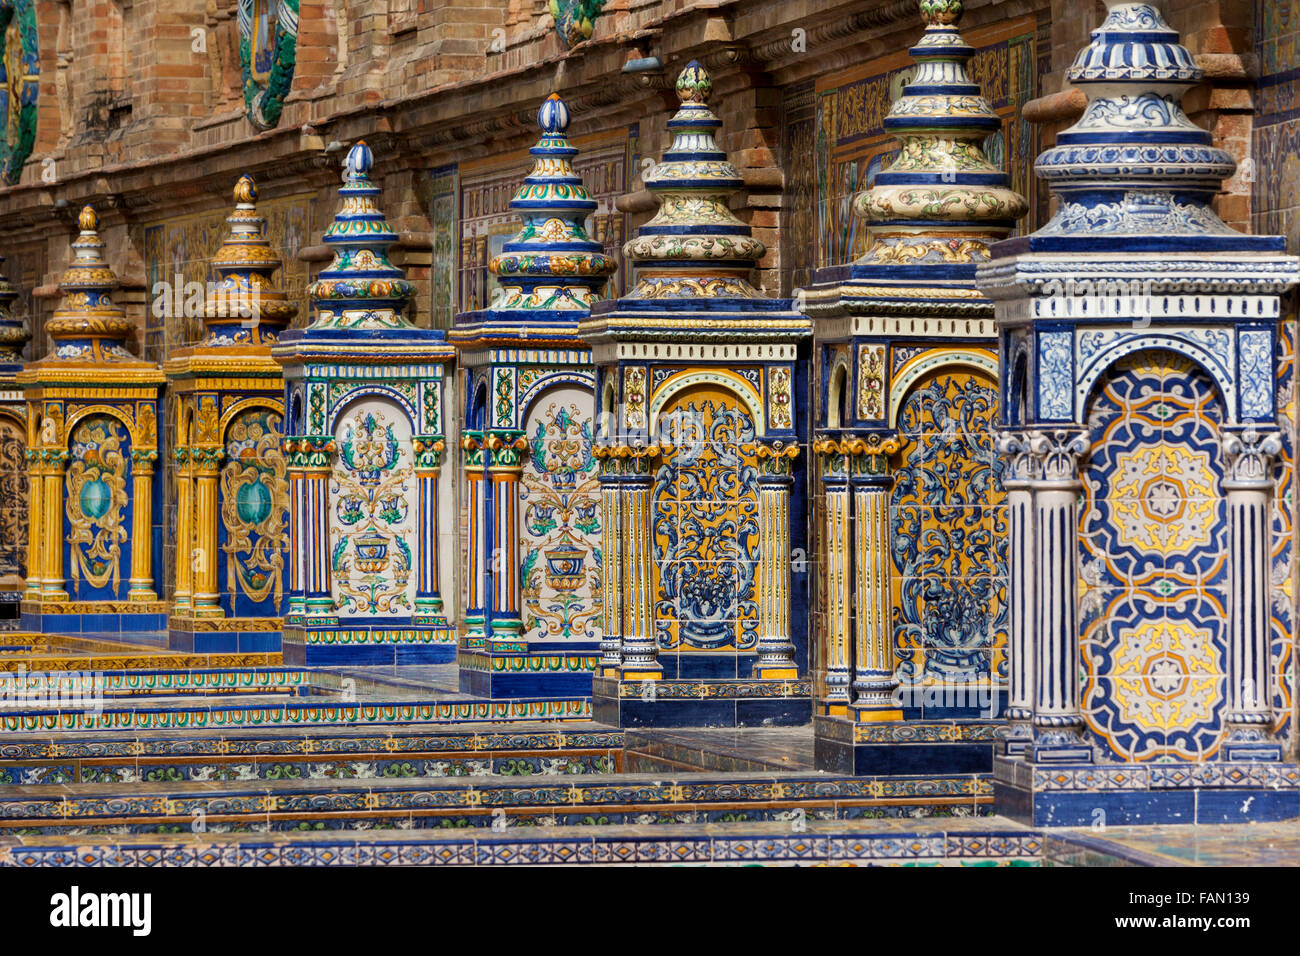 azulejos painted ceramic tiles in alcoves in plaza de